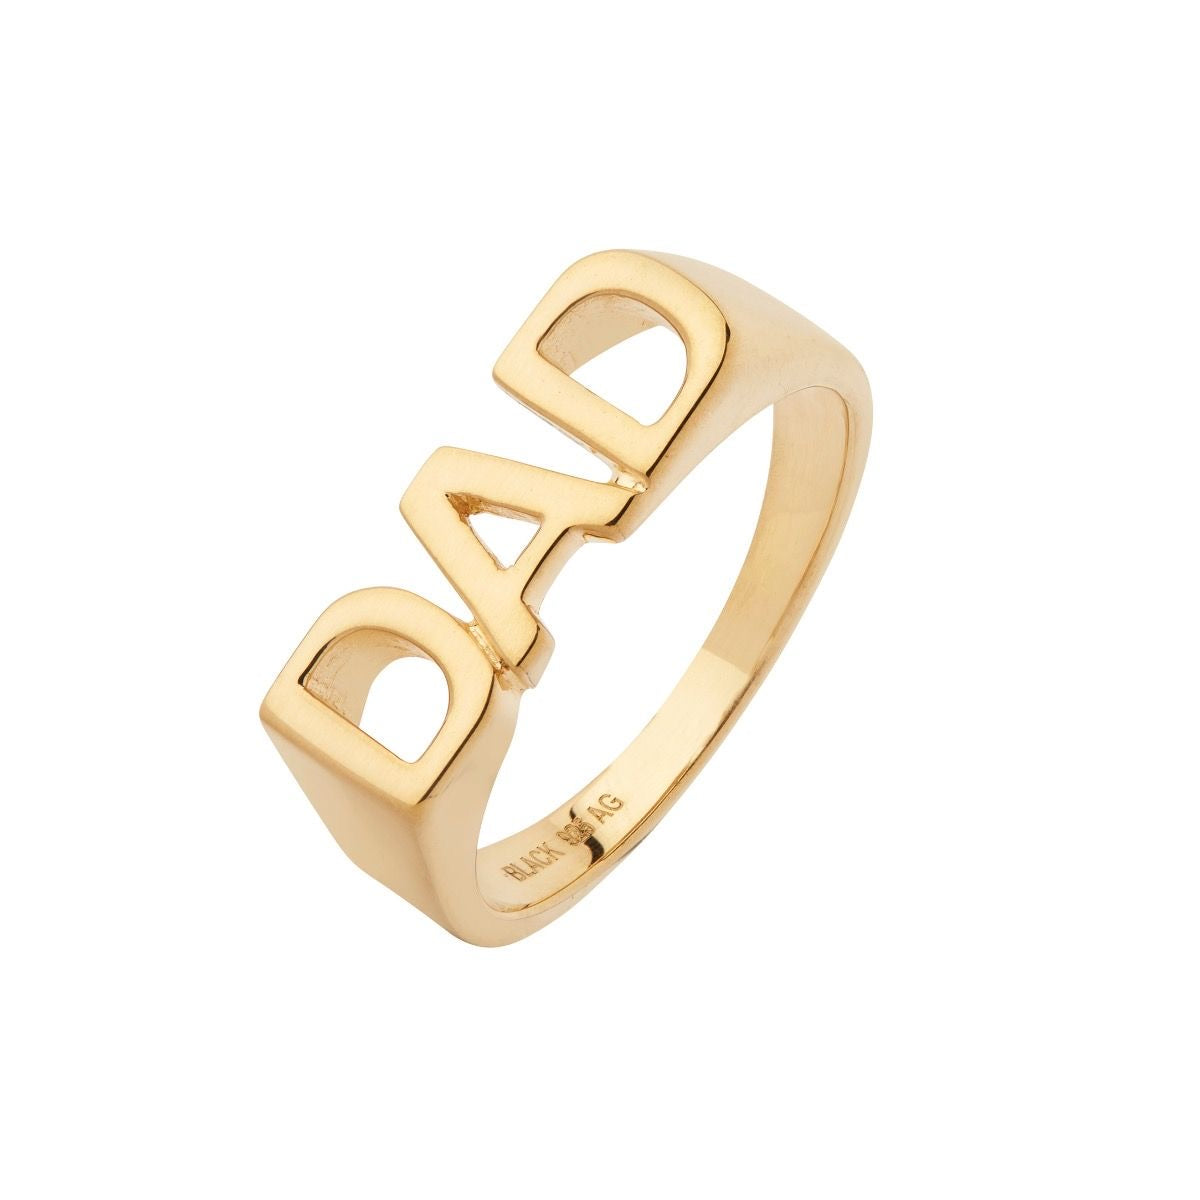 DAD RING - Gold plated